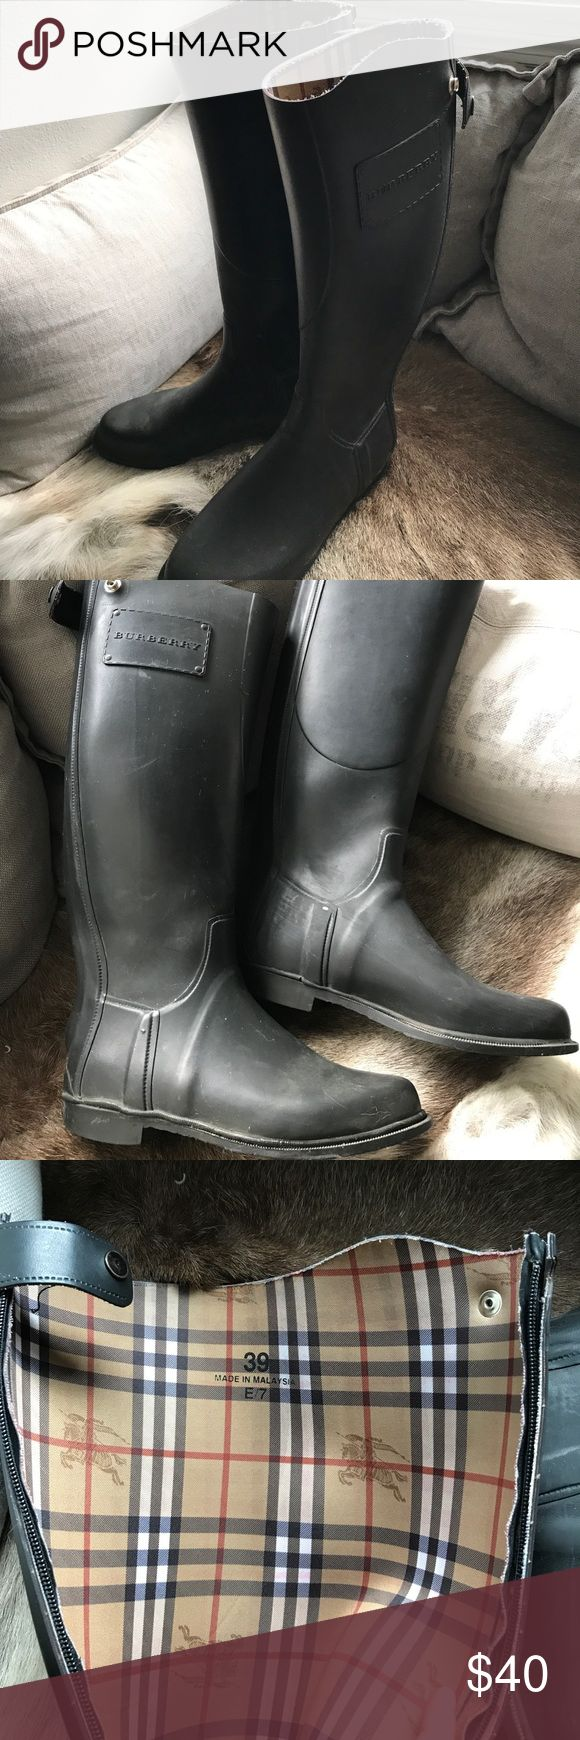 Burberry rain boots Burberry rain boots size 39. Riding boots style. Rubber all around, good working condition. Burberry Shoes